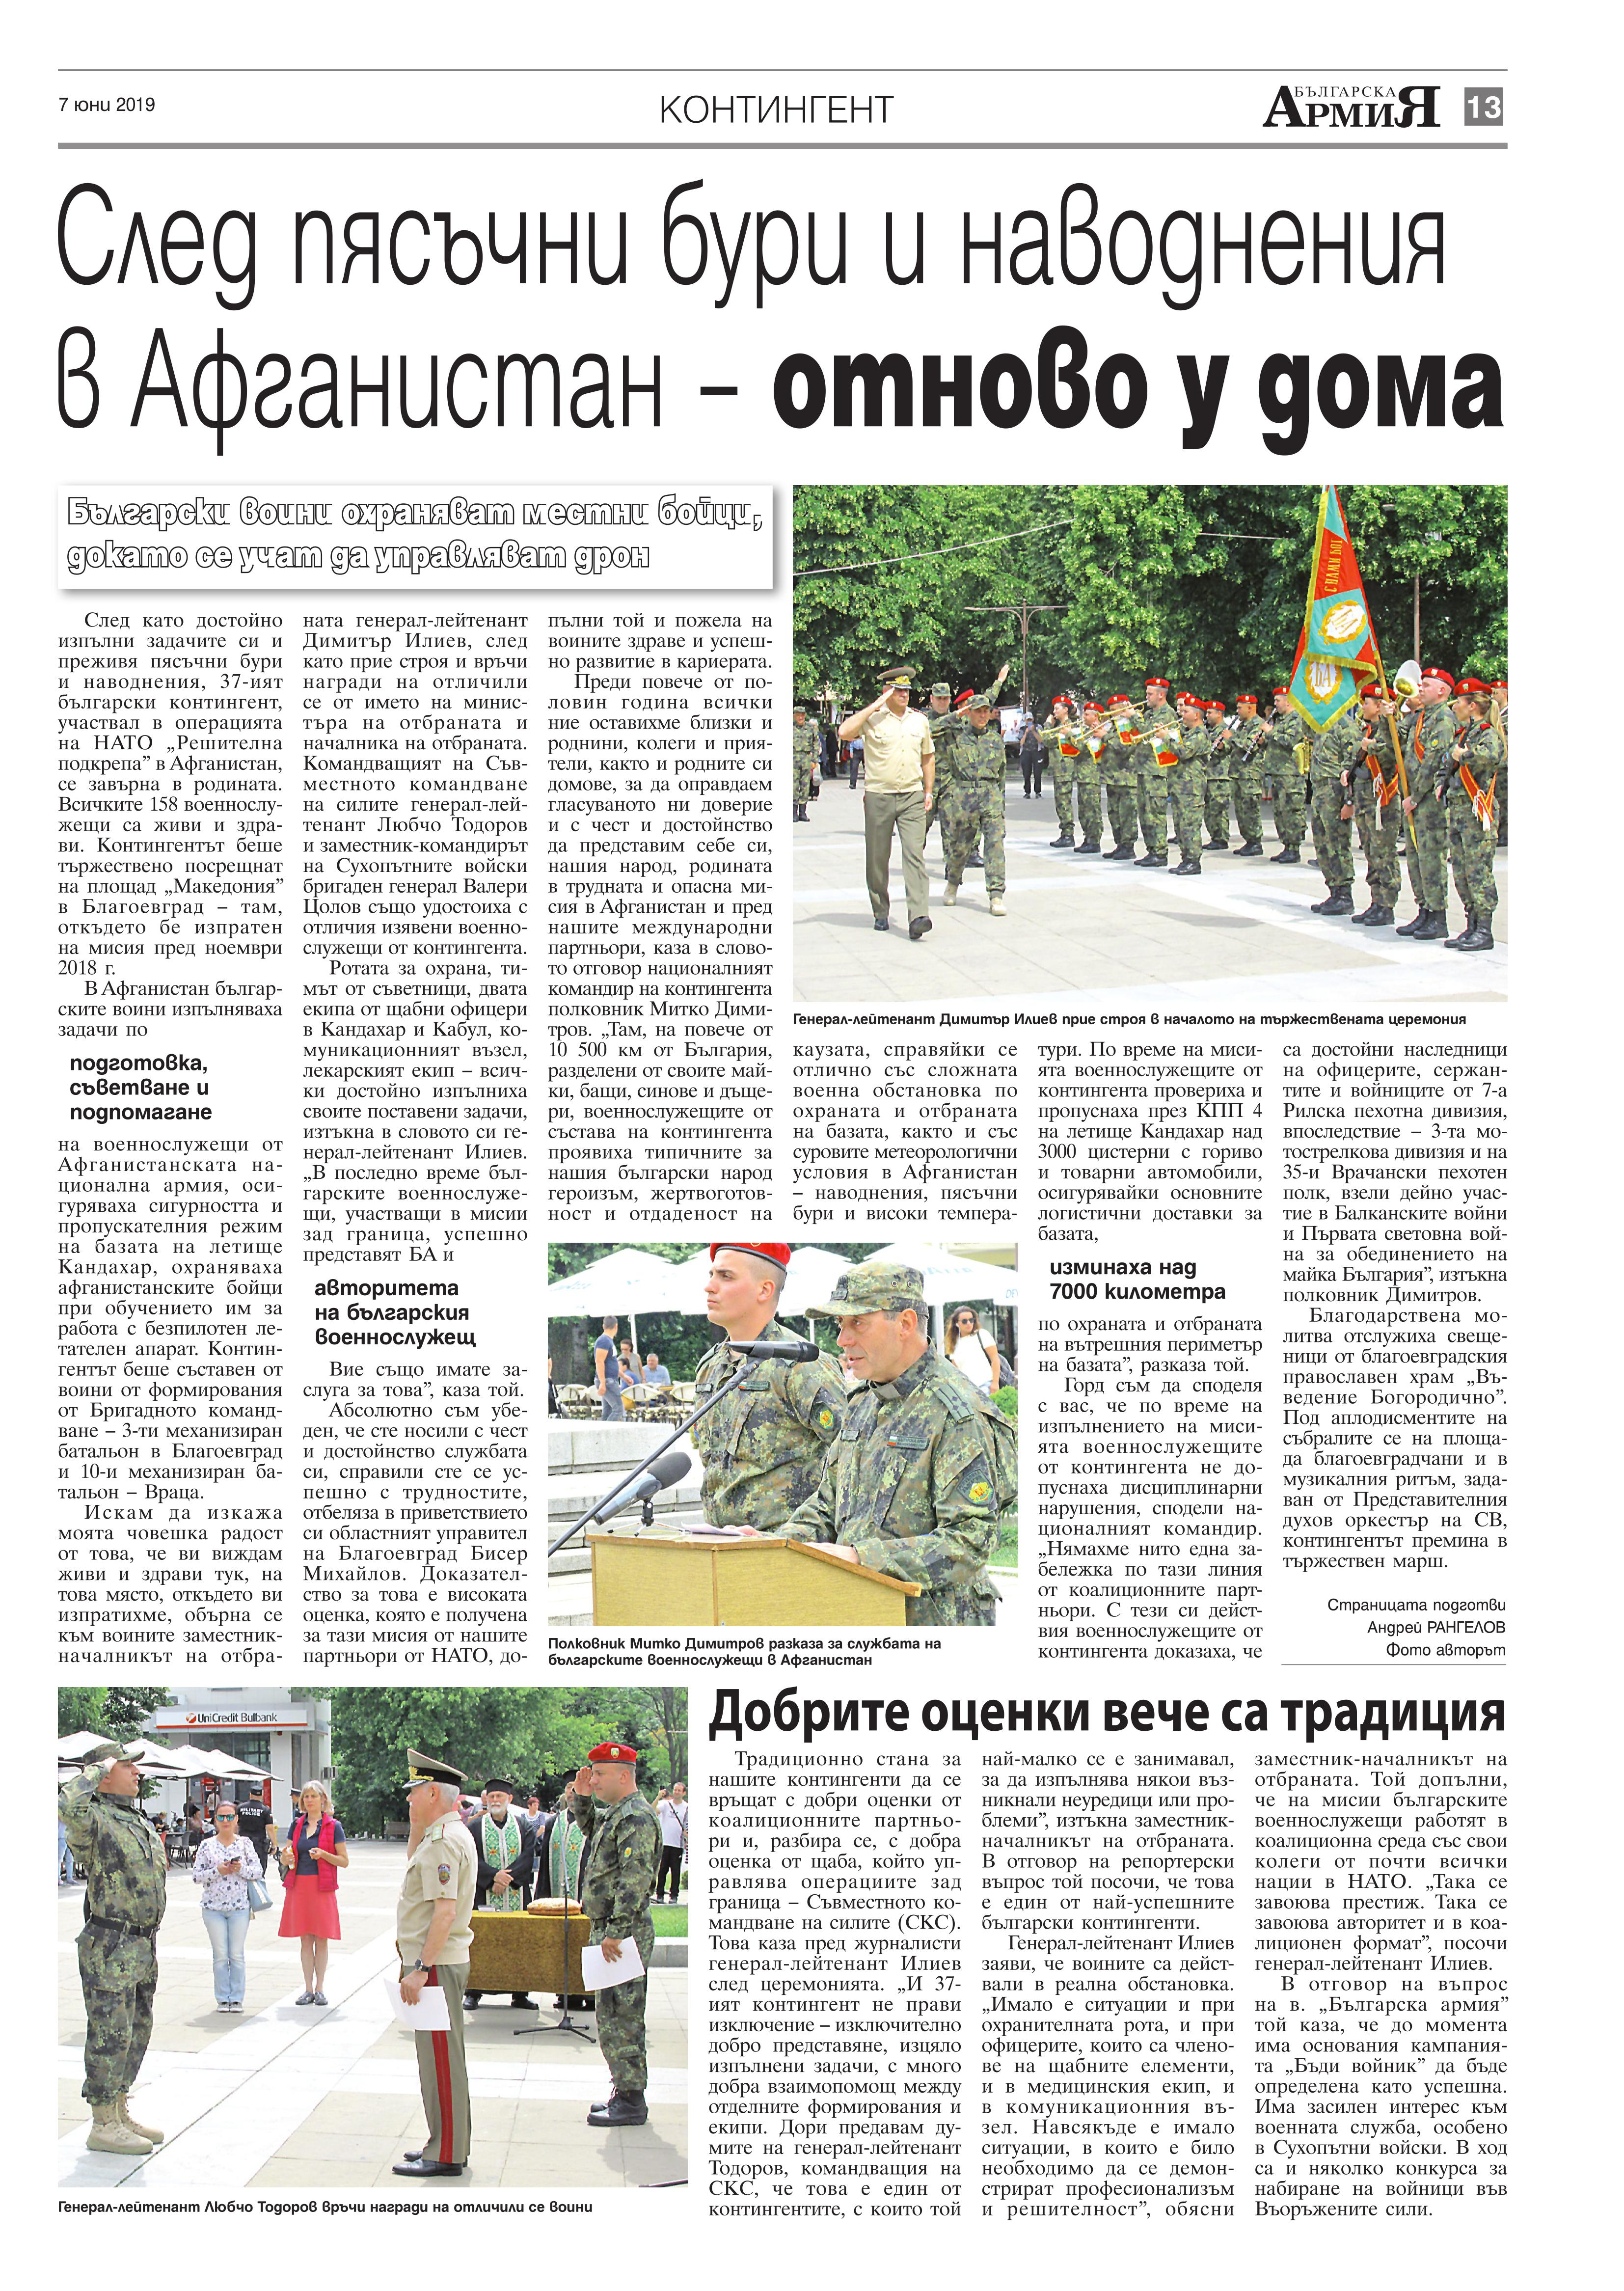 https://www.armymedia.bg/wp-content/uploads/2015/06/13.page1_-98.jpg